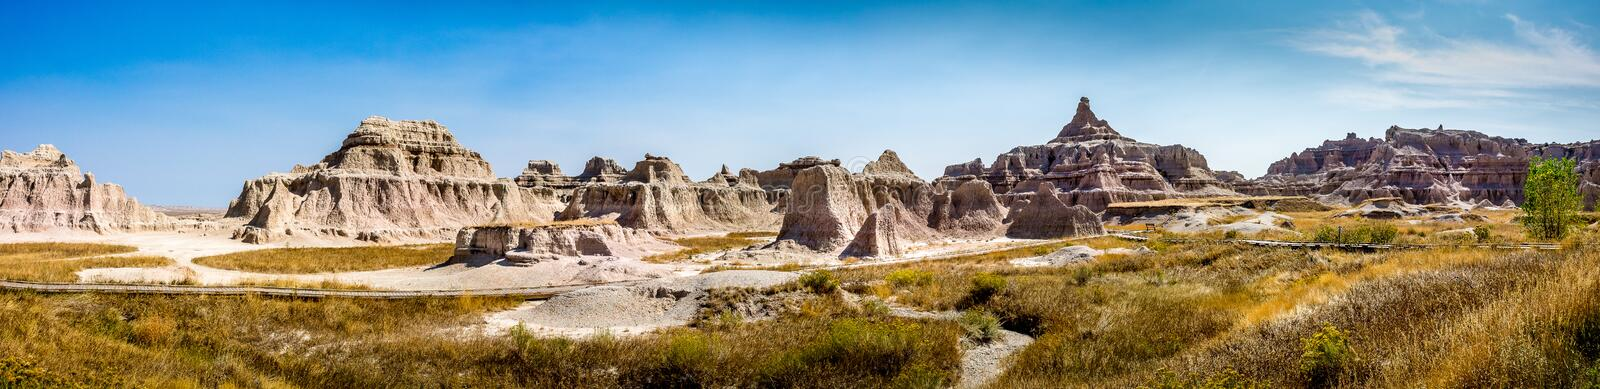 Big Badlands Overlook royalty free stock images